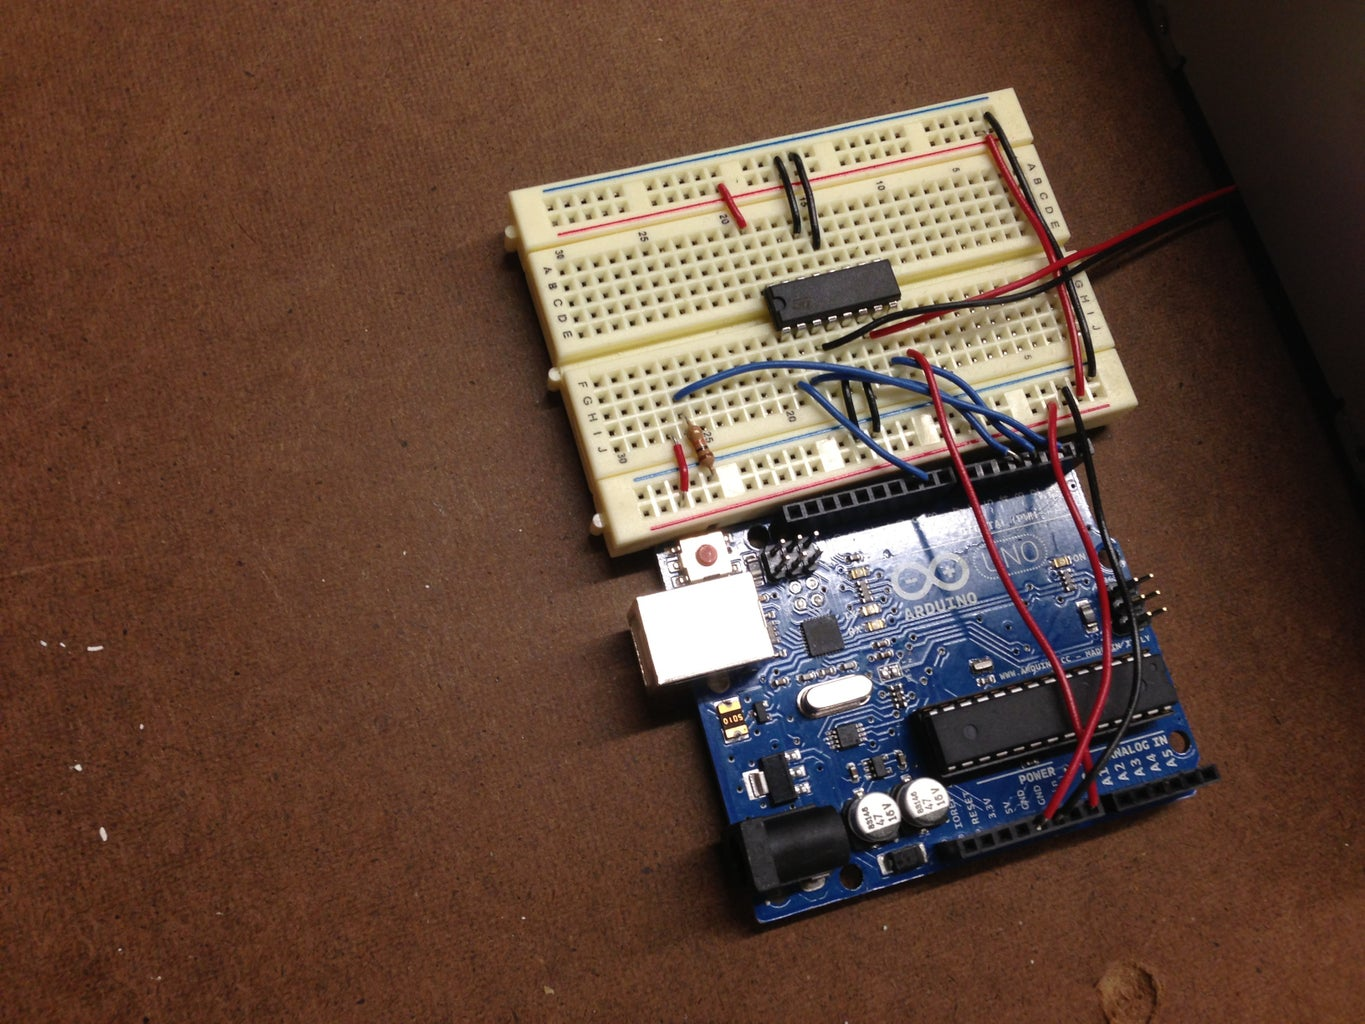 The H-Bridge Connected to the Arduino (No Toggle Switch)